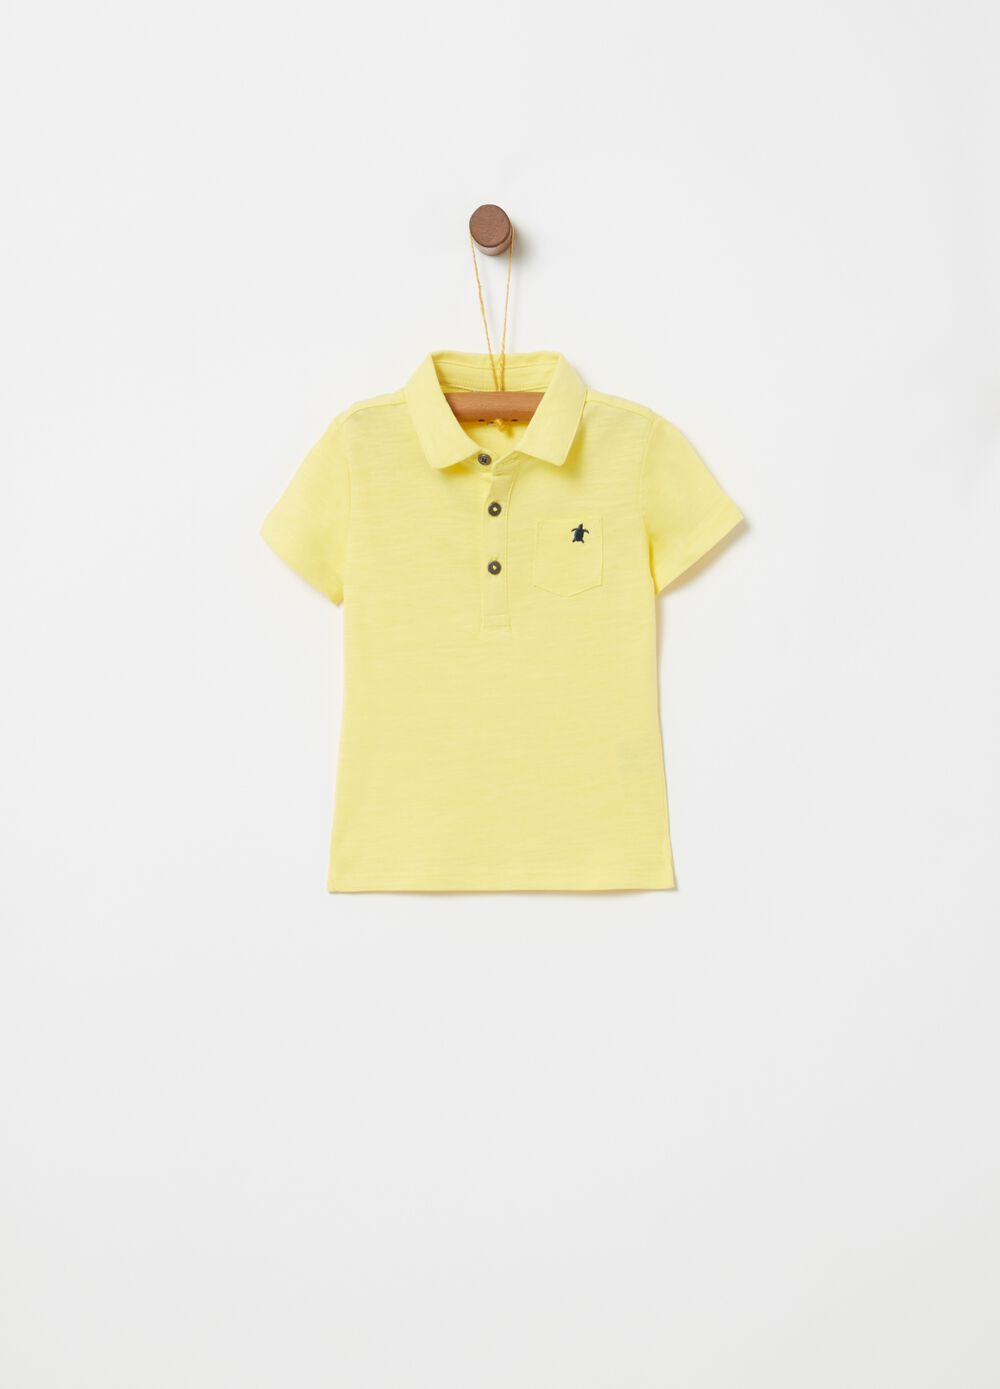 100% cotton polo shirt with pocket